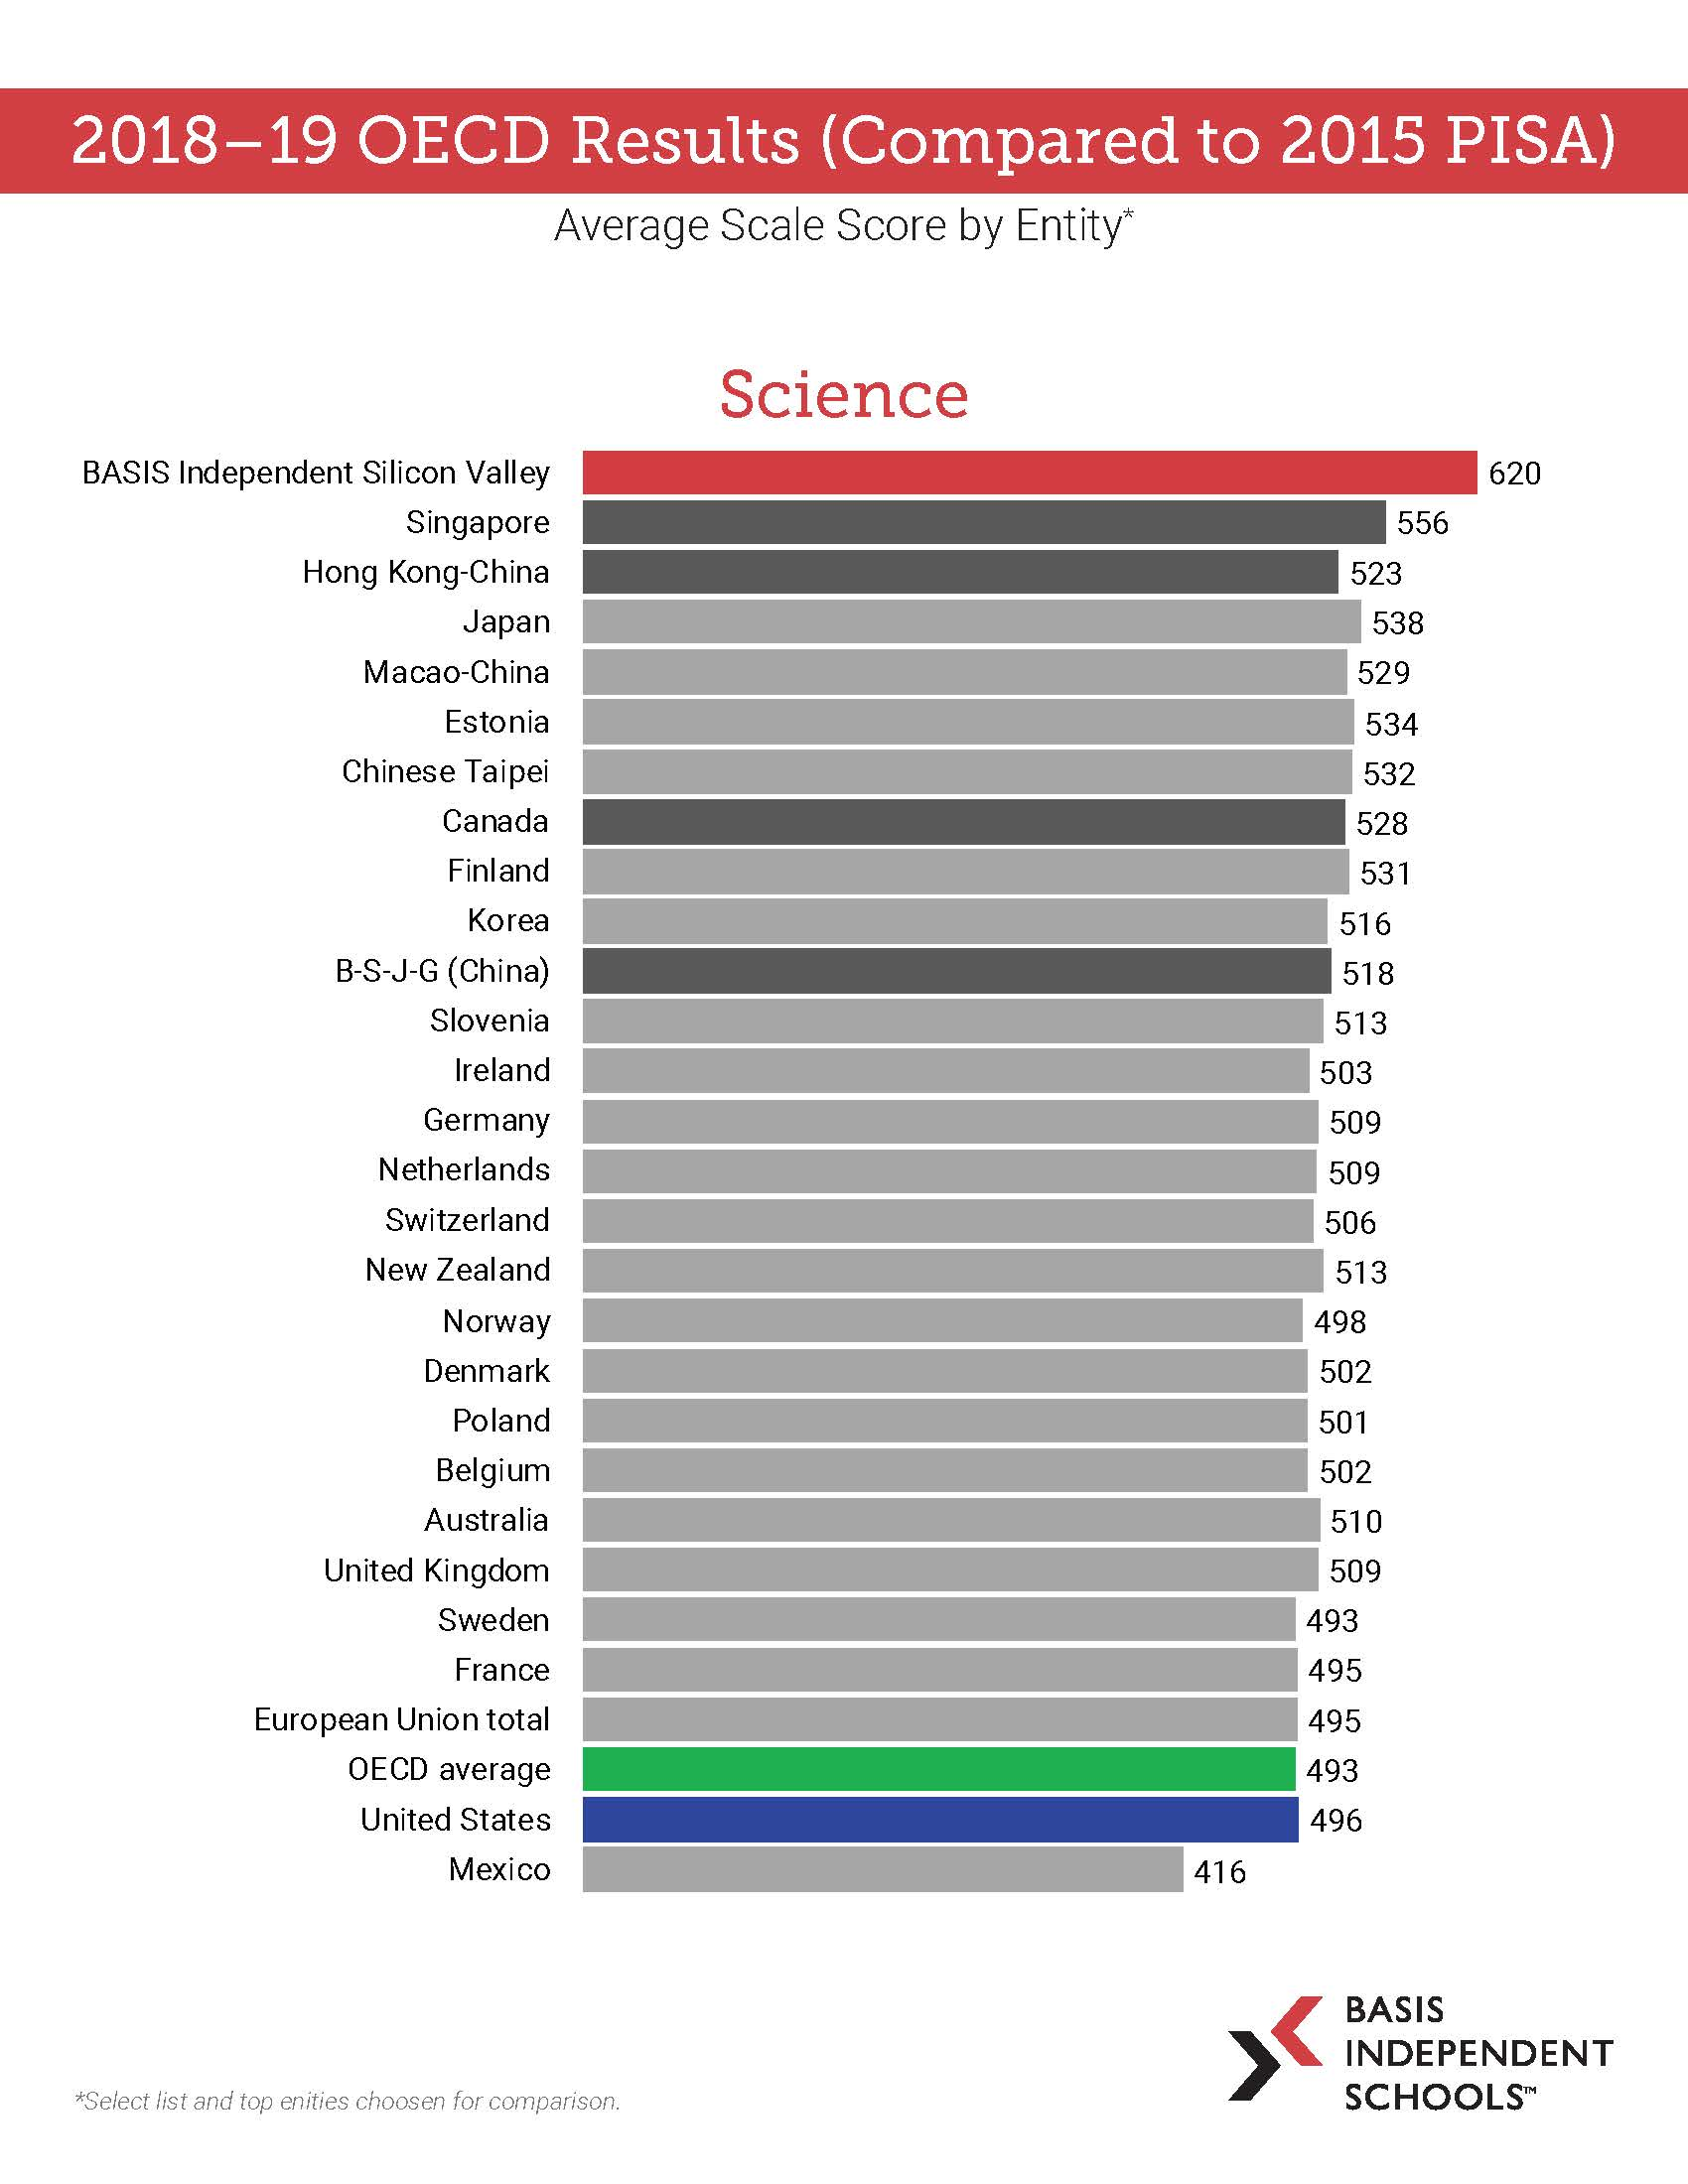 2018 - 2019 OECD Results_Page_3